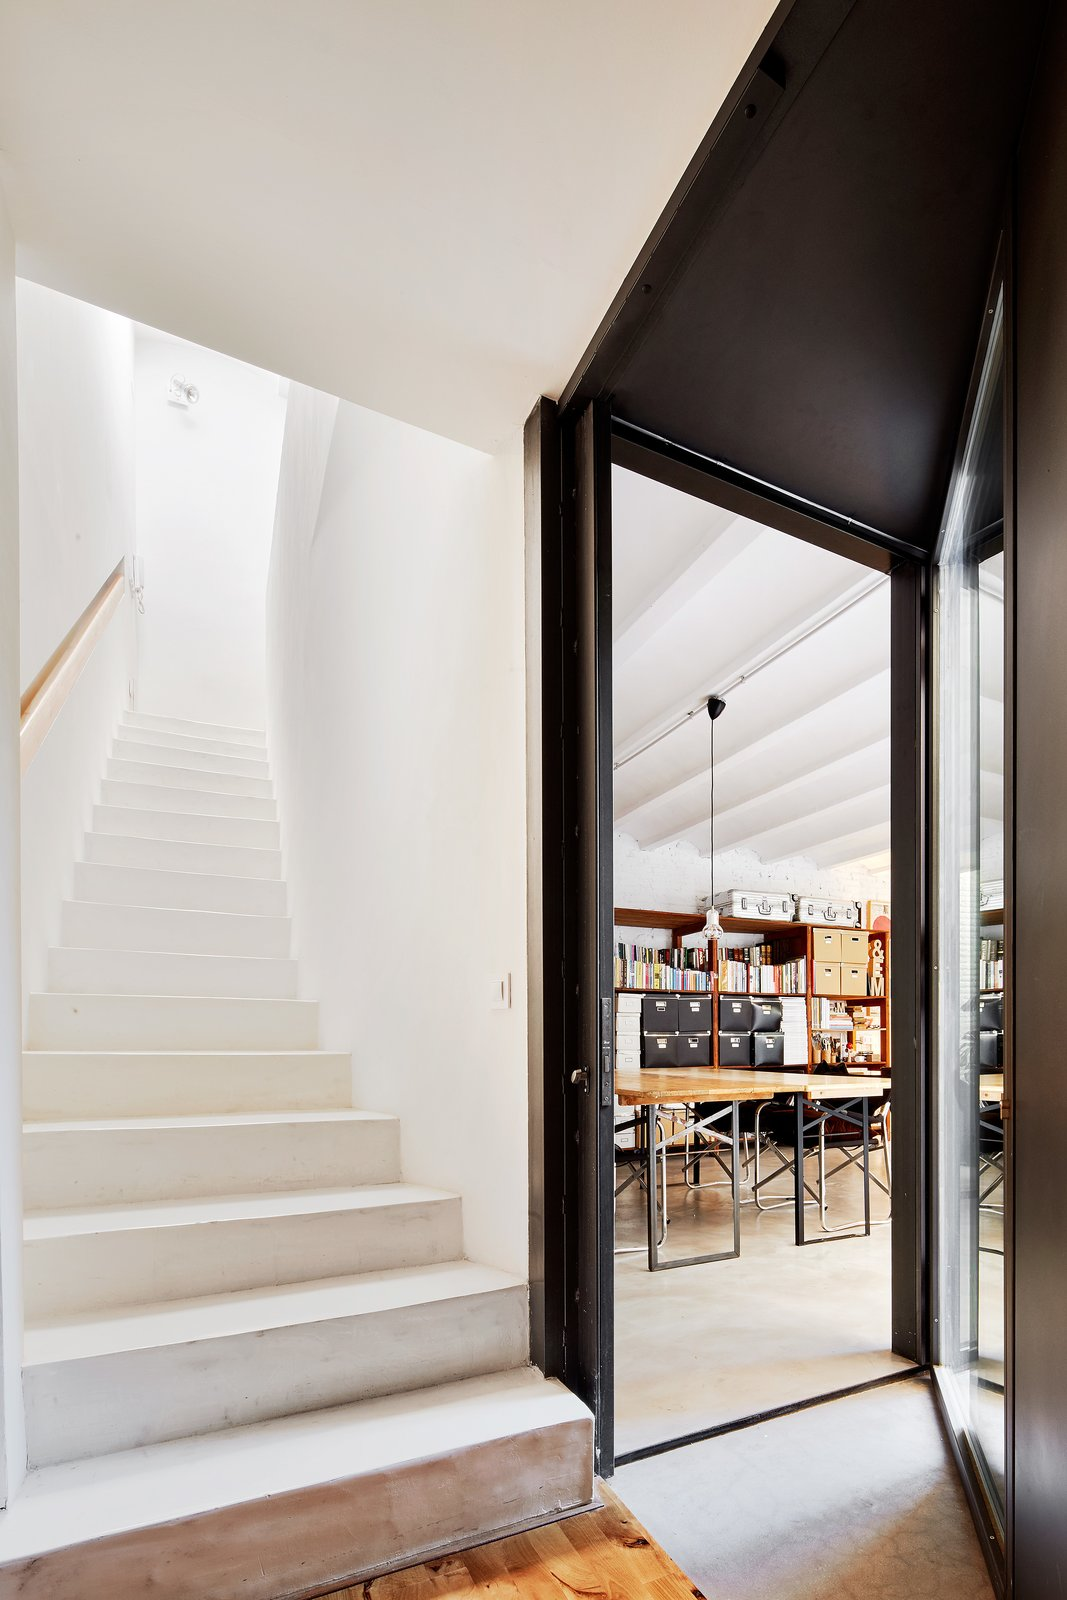 Staircase, Concrete, and Wood Staircase and the extended passageway  Staircase Wood Concrete Photos from Conversion of a ground-floor publisher's warehouse into a residence and atelier for an artist-architect couple